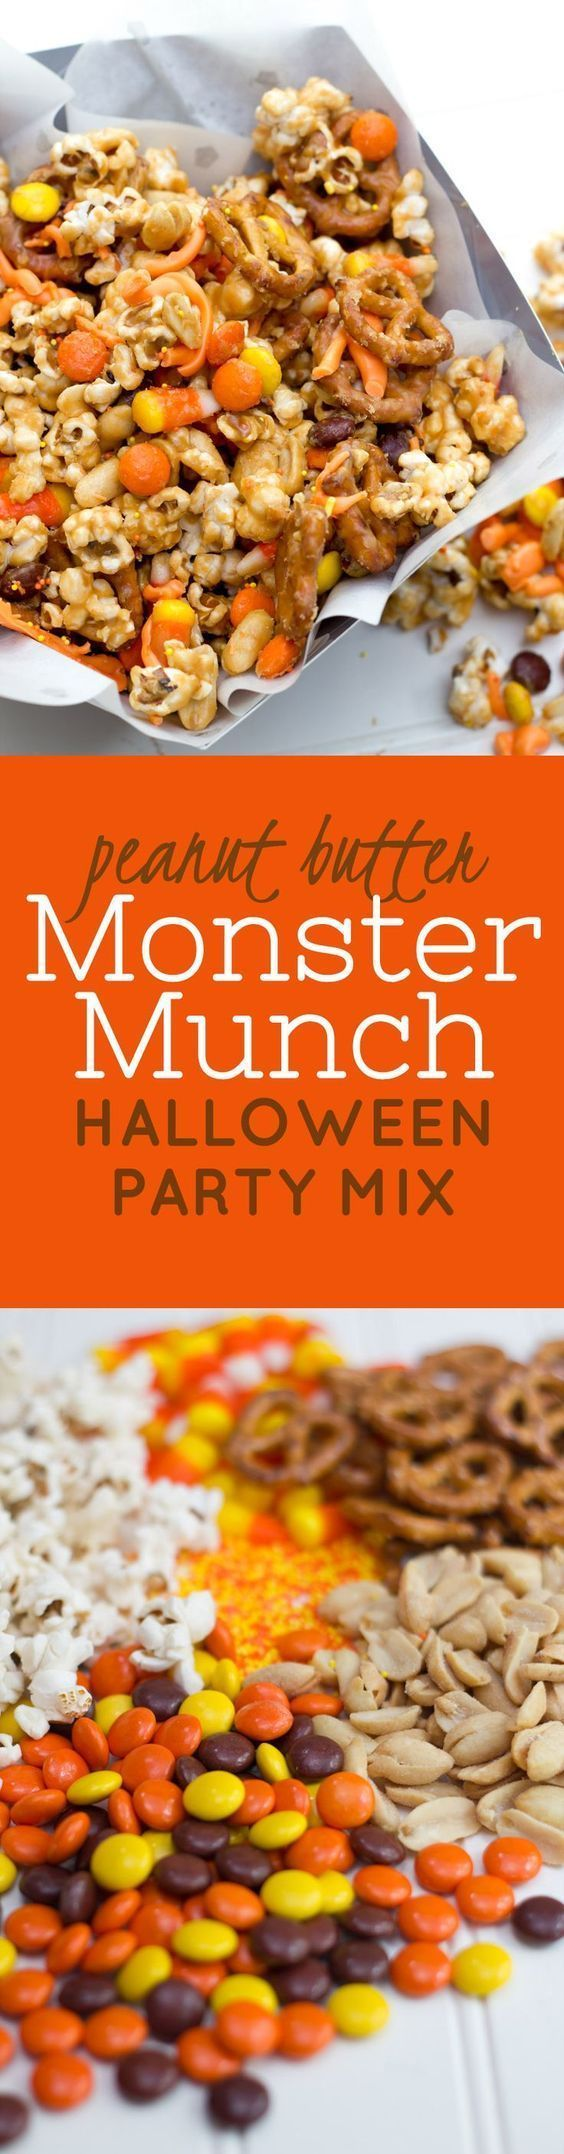 57 best images about Scary foods for Halloween on Pinterest ...